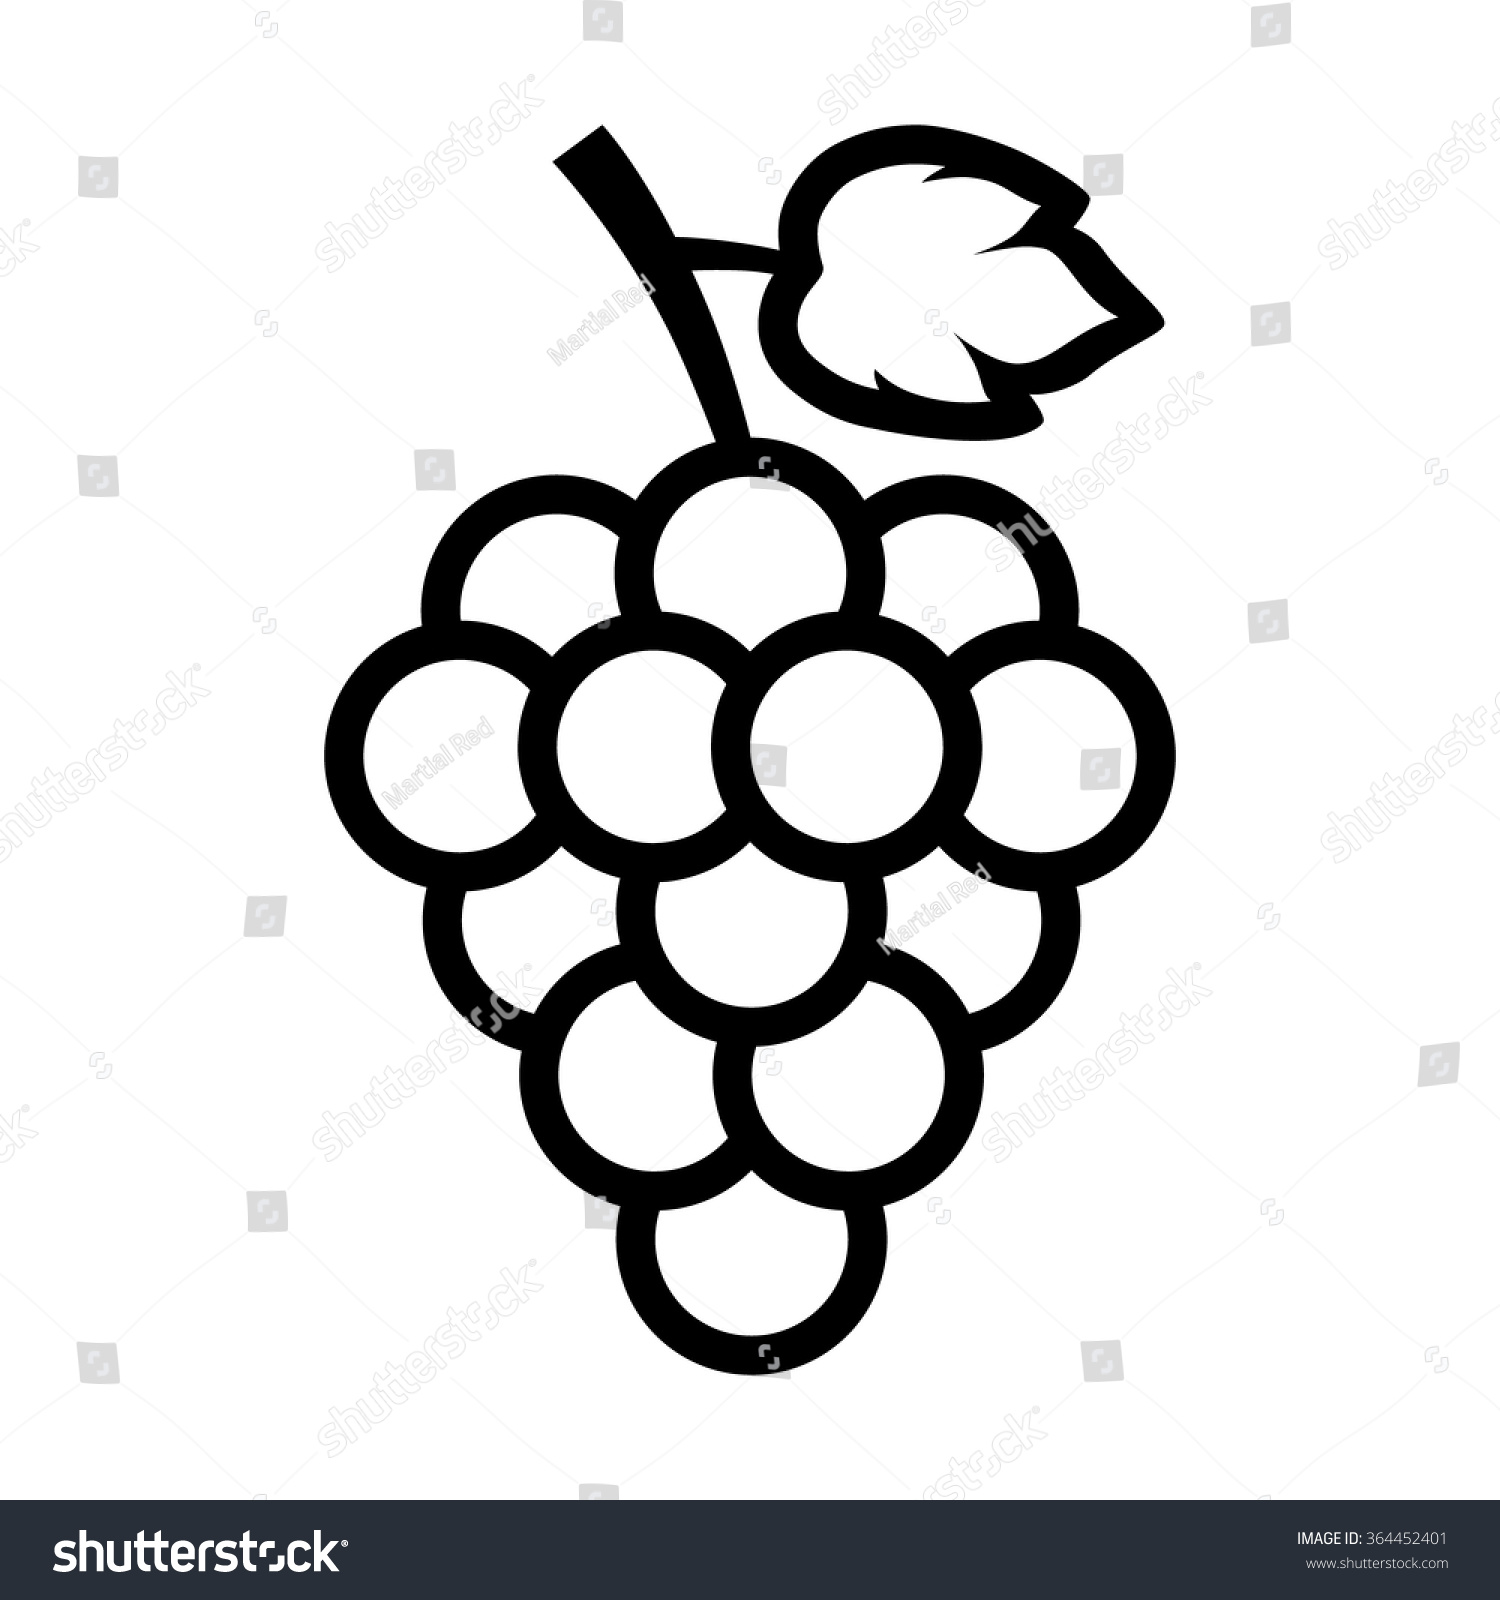 Line Drawing App : Bunch grapes leaf line art icon stock vector